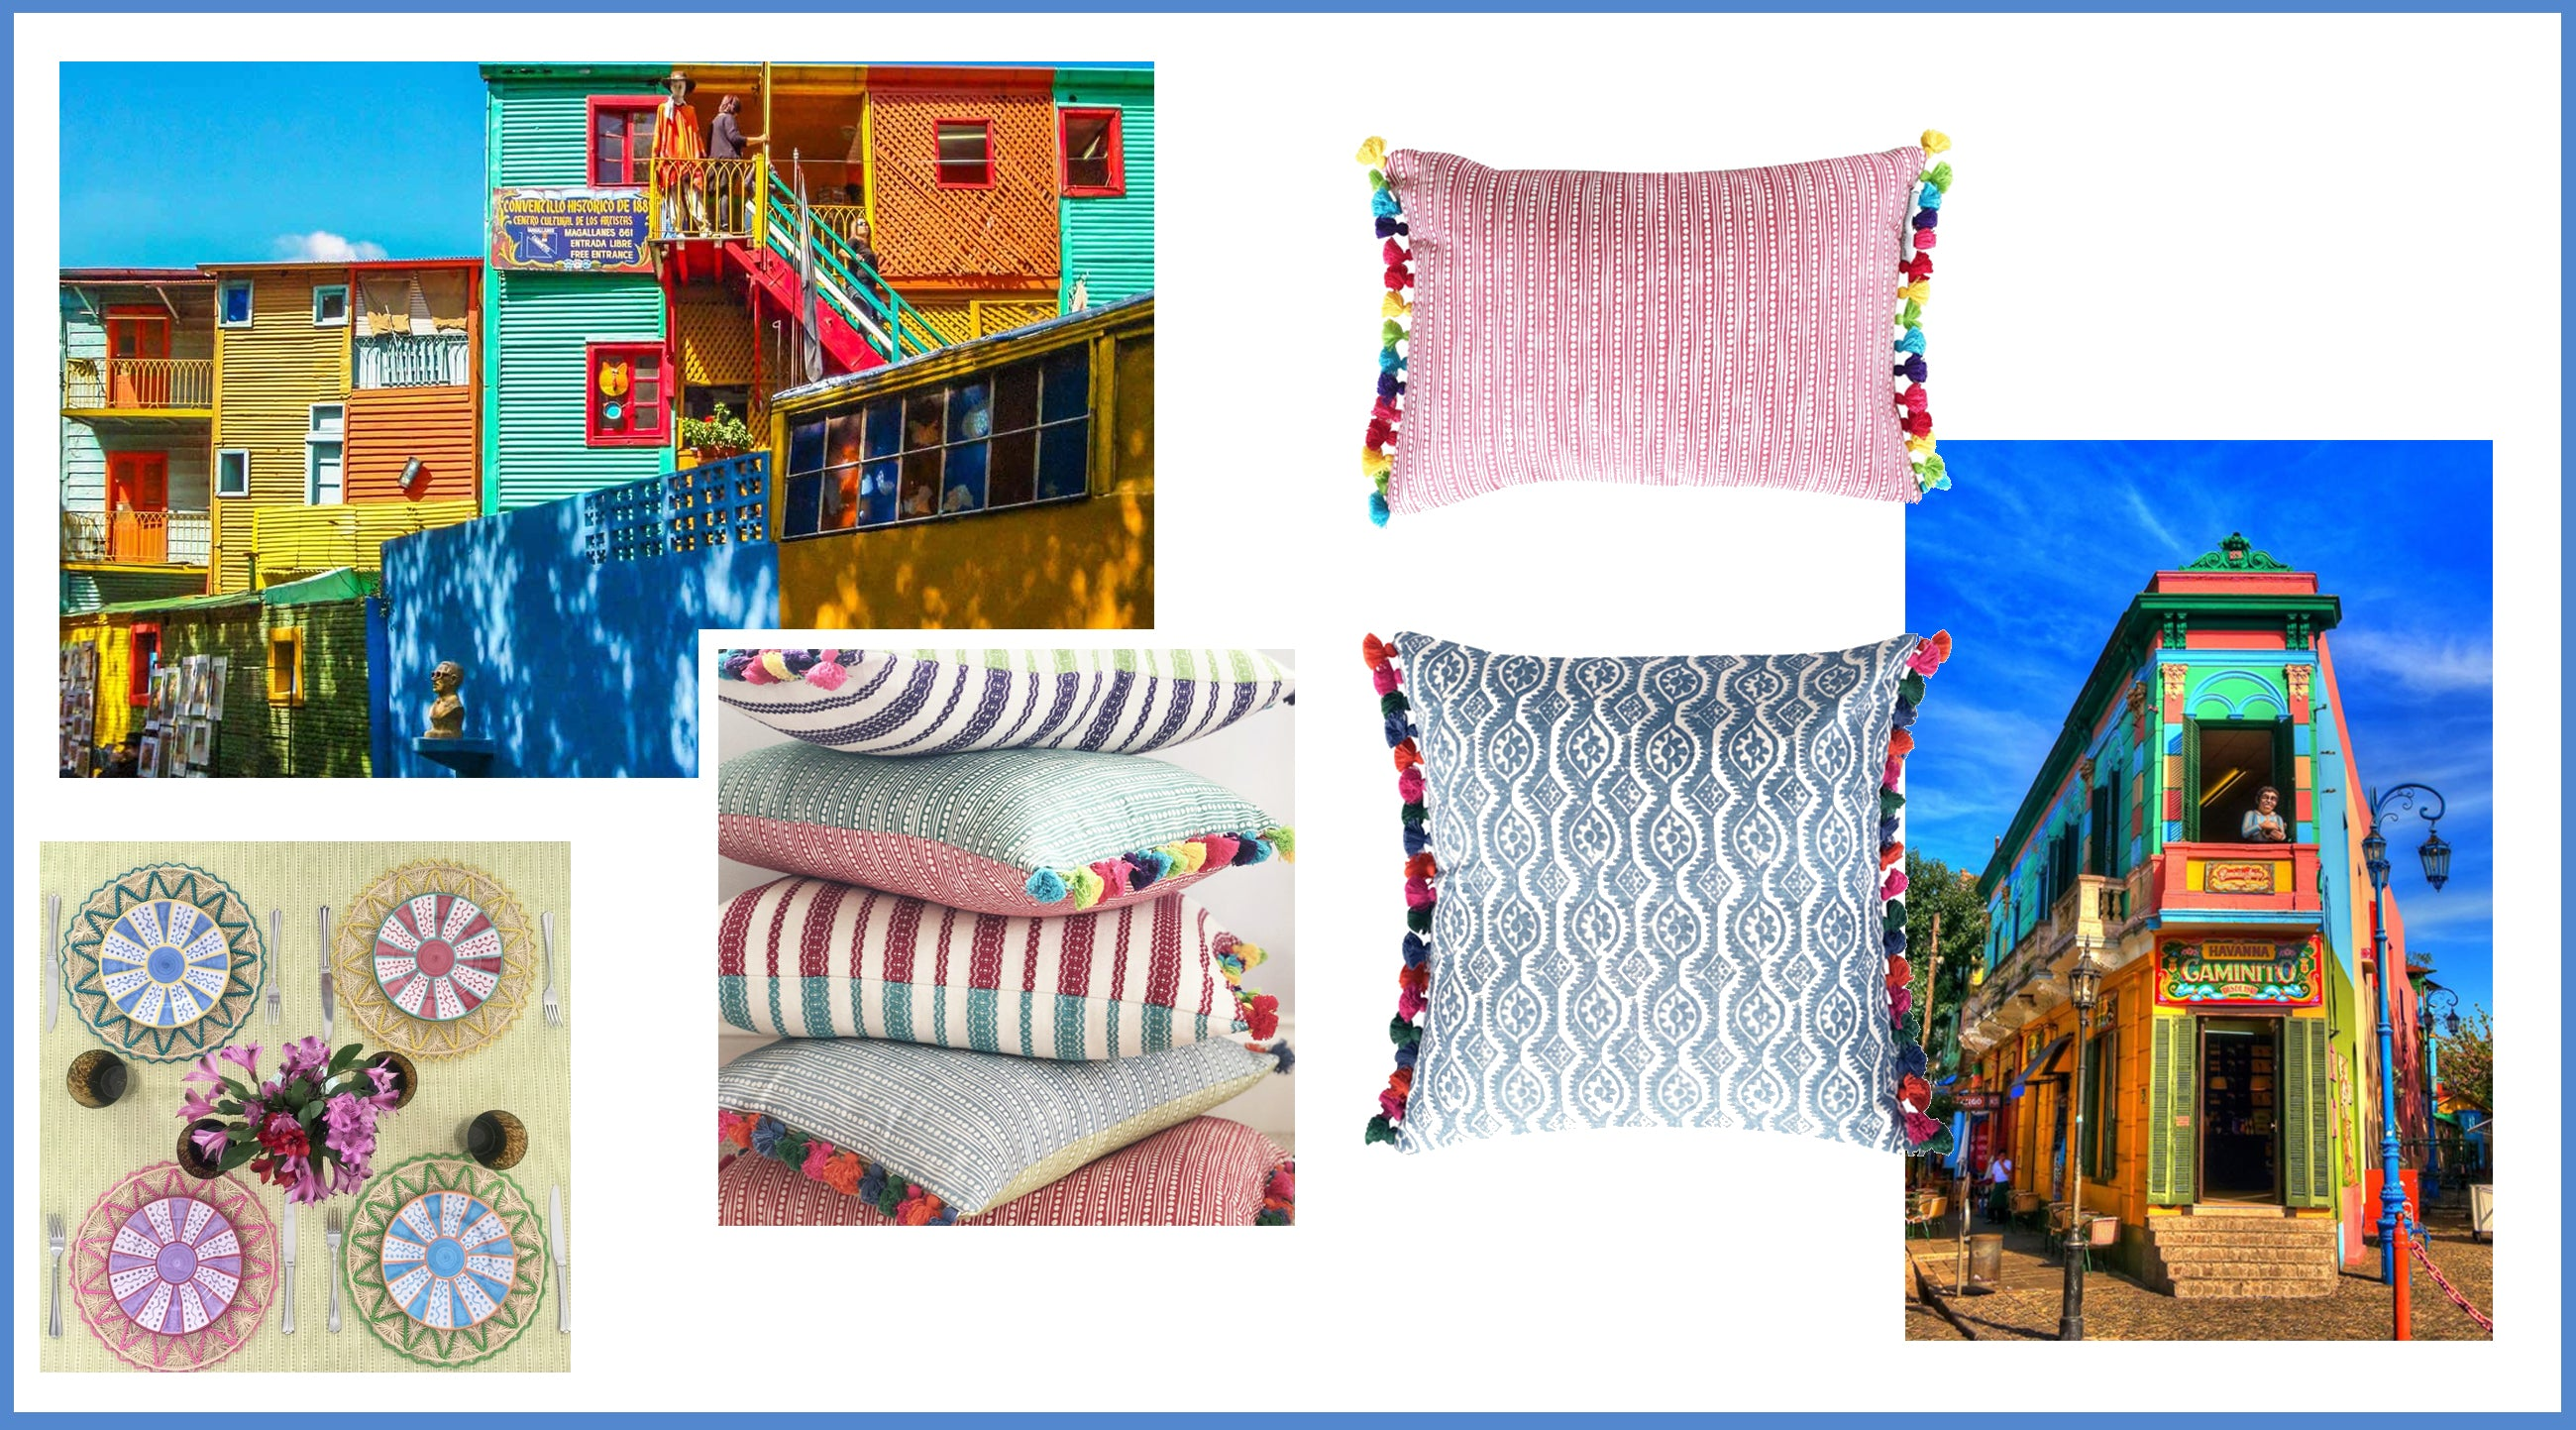 Shop wicklewood rainbow collection with multicoloured tasseled cushions and iraca placemats